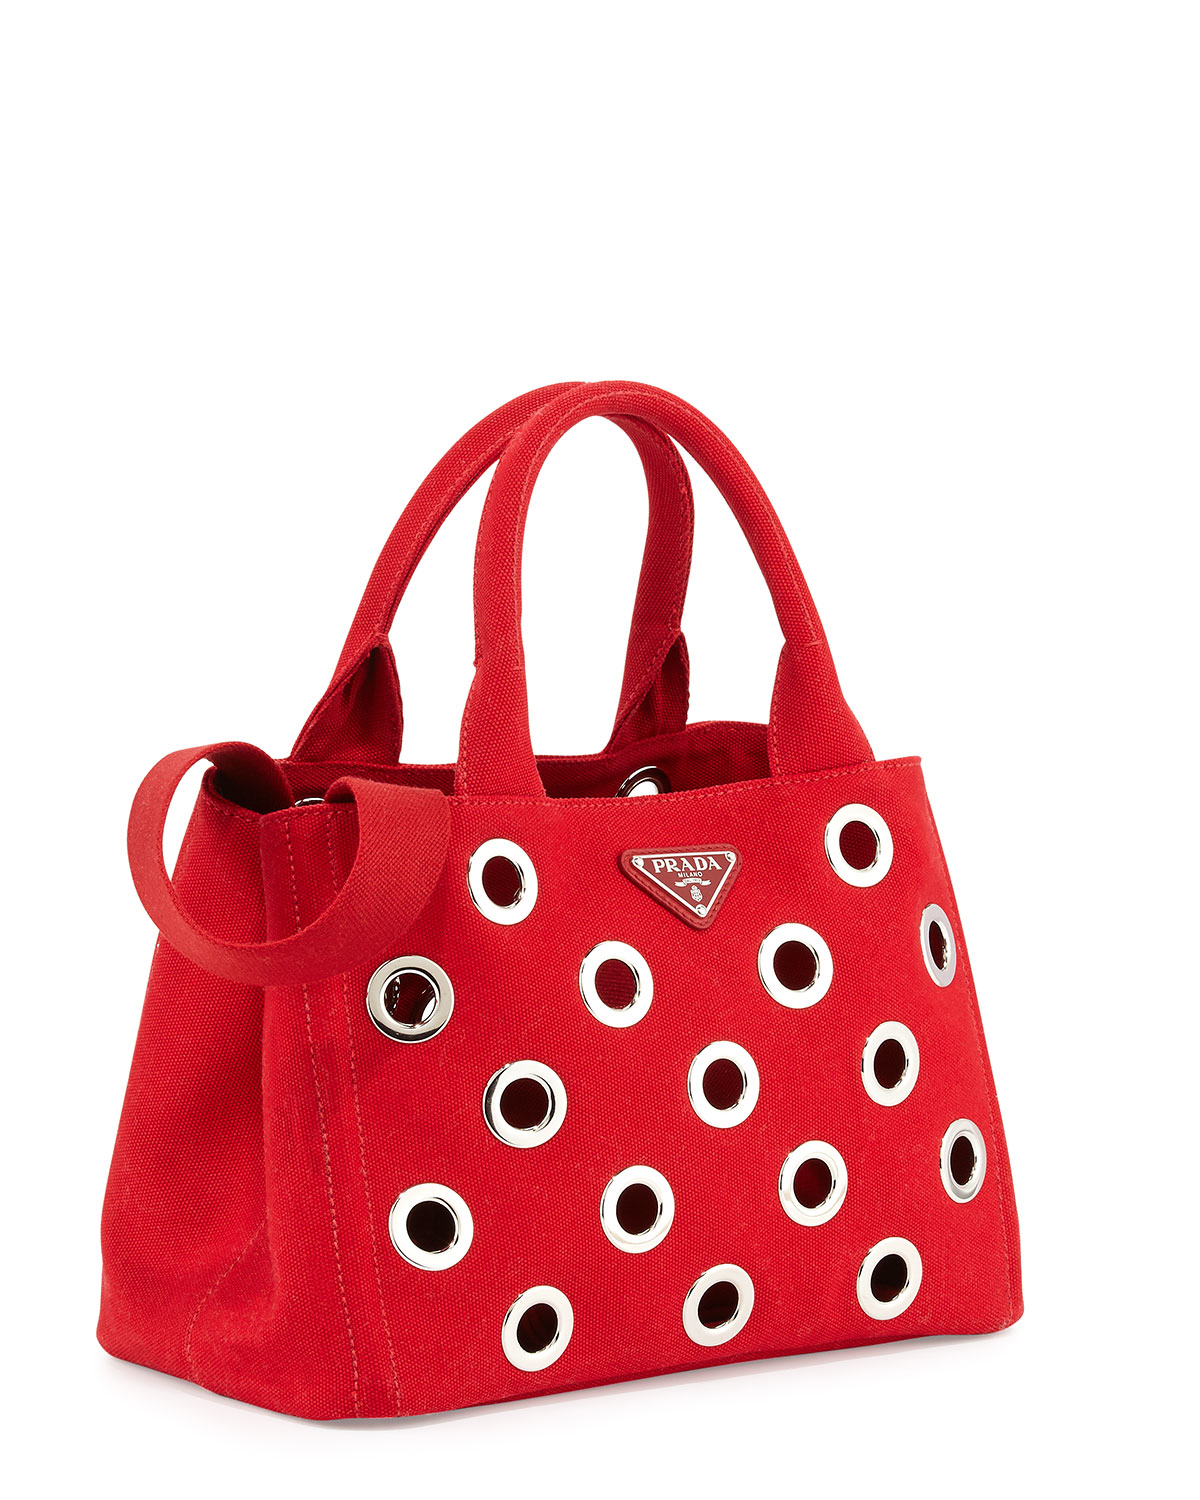 ae493ed7c4 Prada Canapa Grommet Small Garden Tote Bag in Red - Lyst